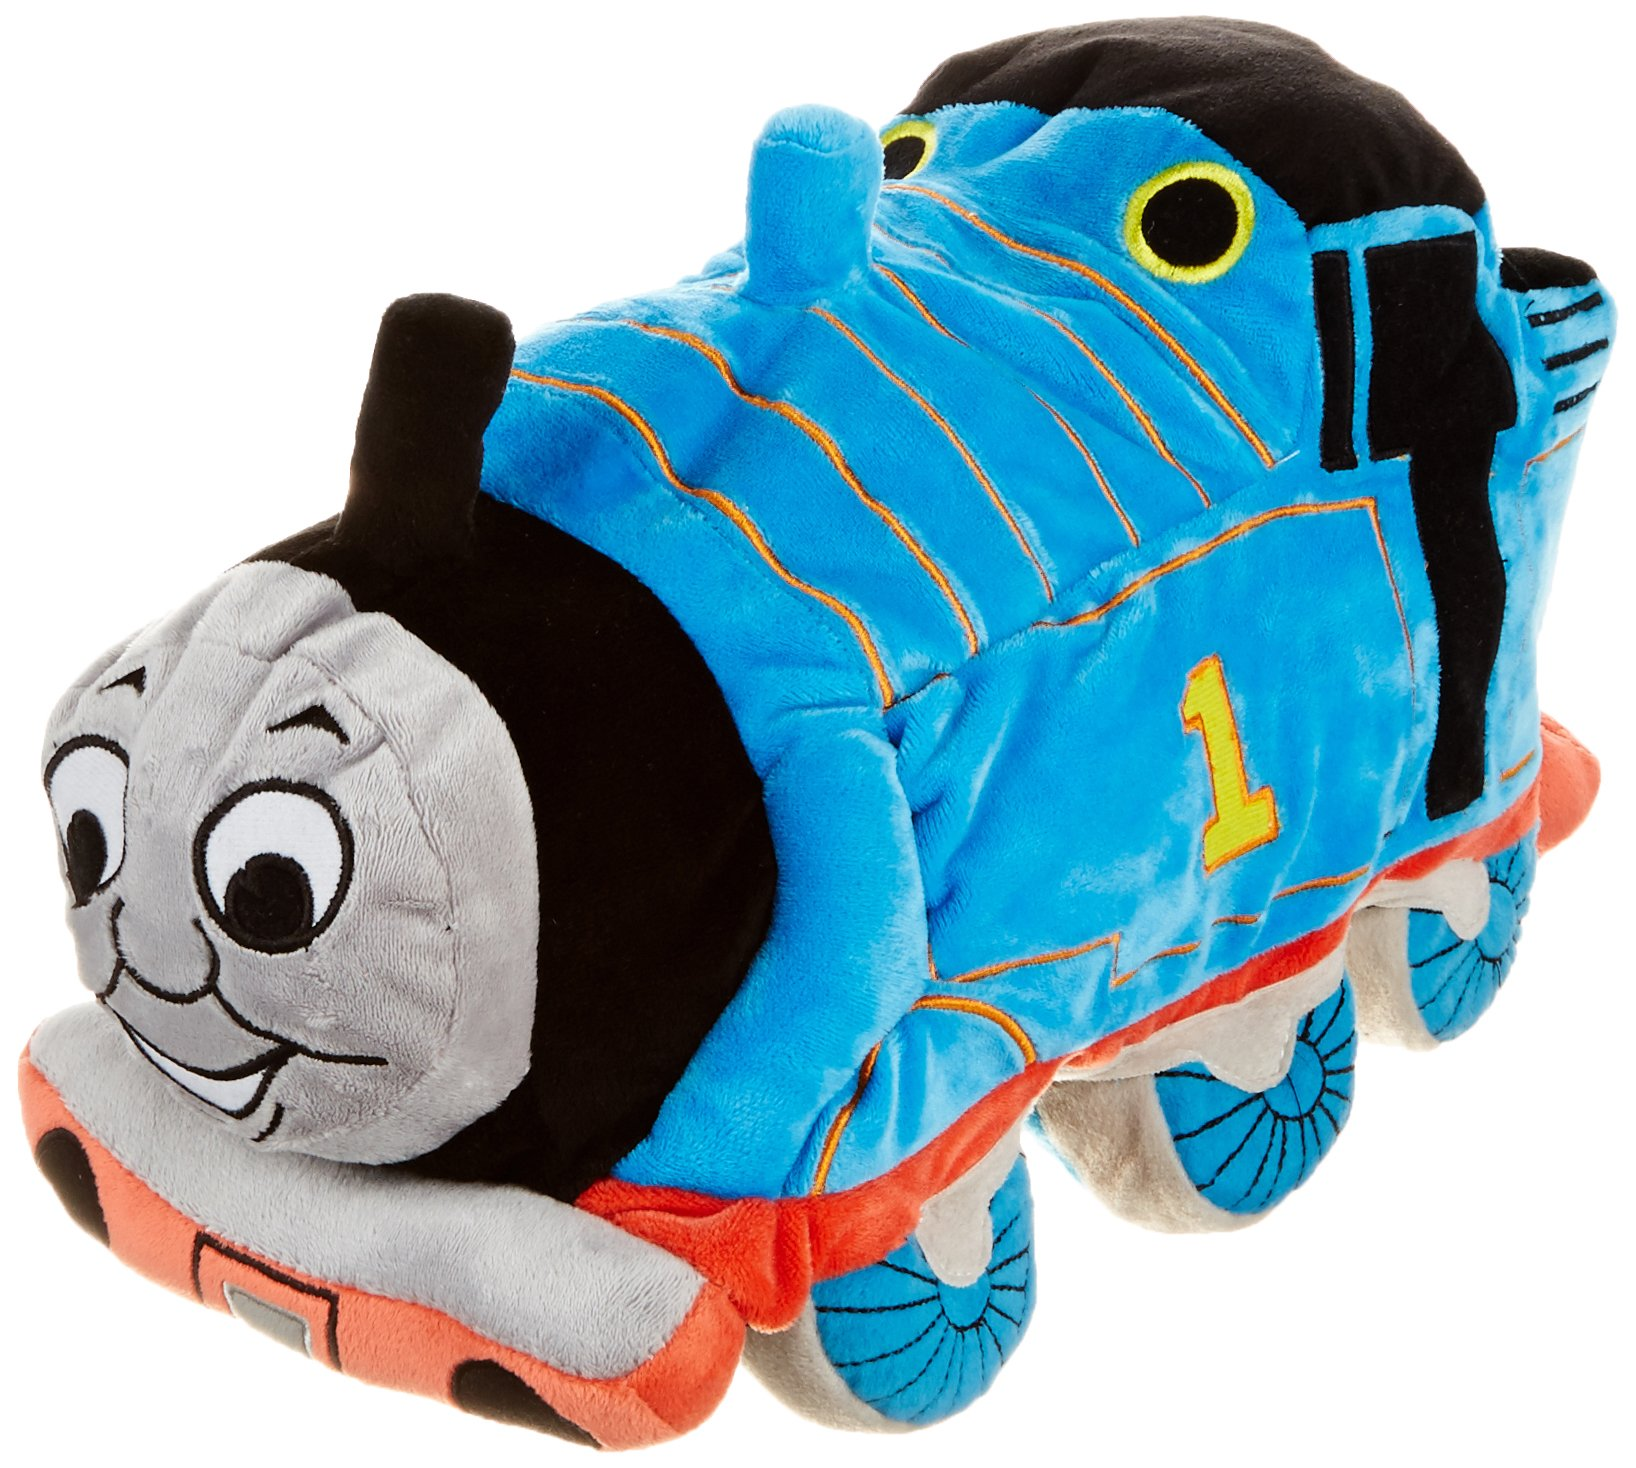 Jay Franco Thomas & Friends Plush Stuffed Toddler Pillow Buddy - Kids Super Soft Polyester Microfiber, 15 inch (Official Mattel Product), D. Thomas by Jay Franco